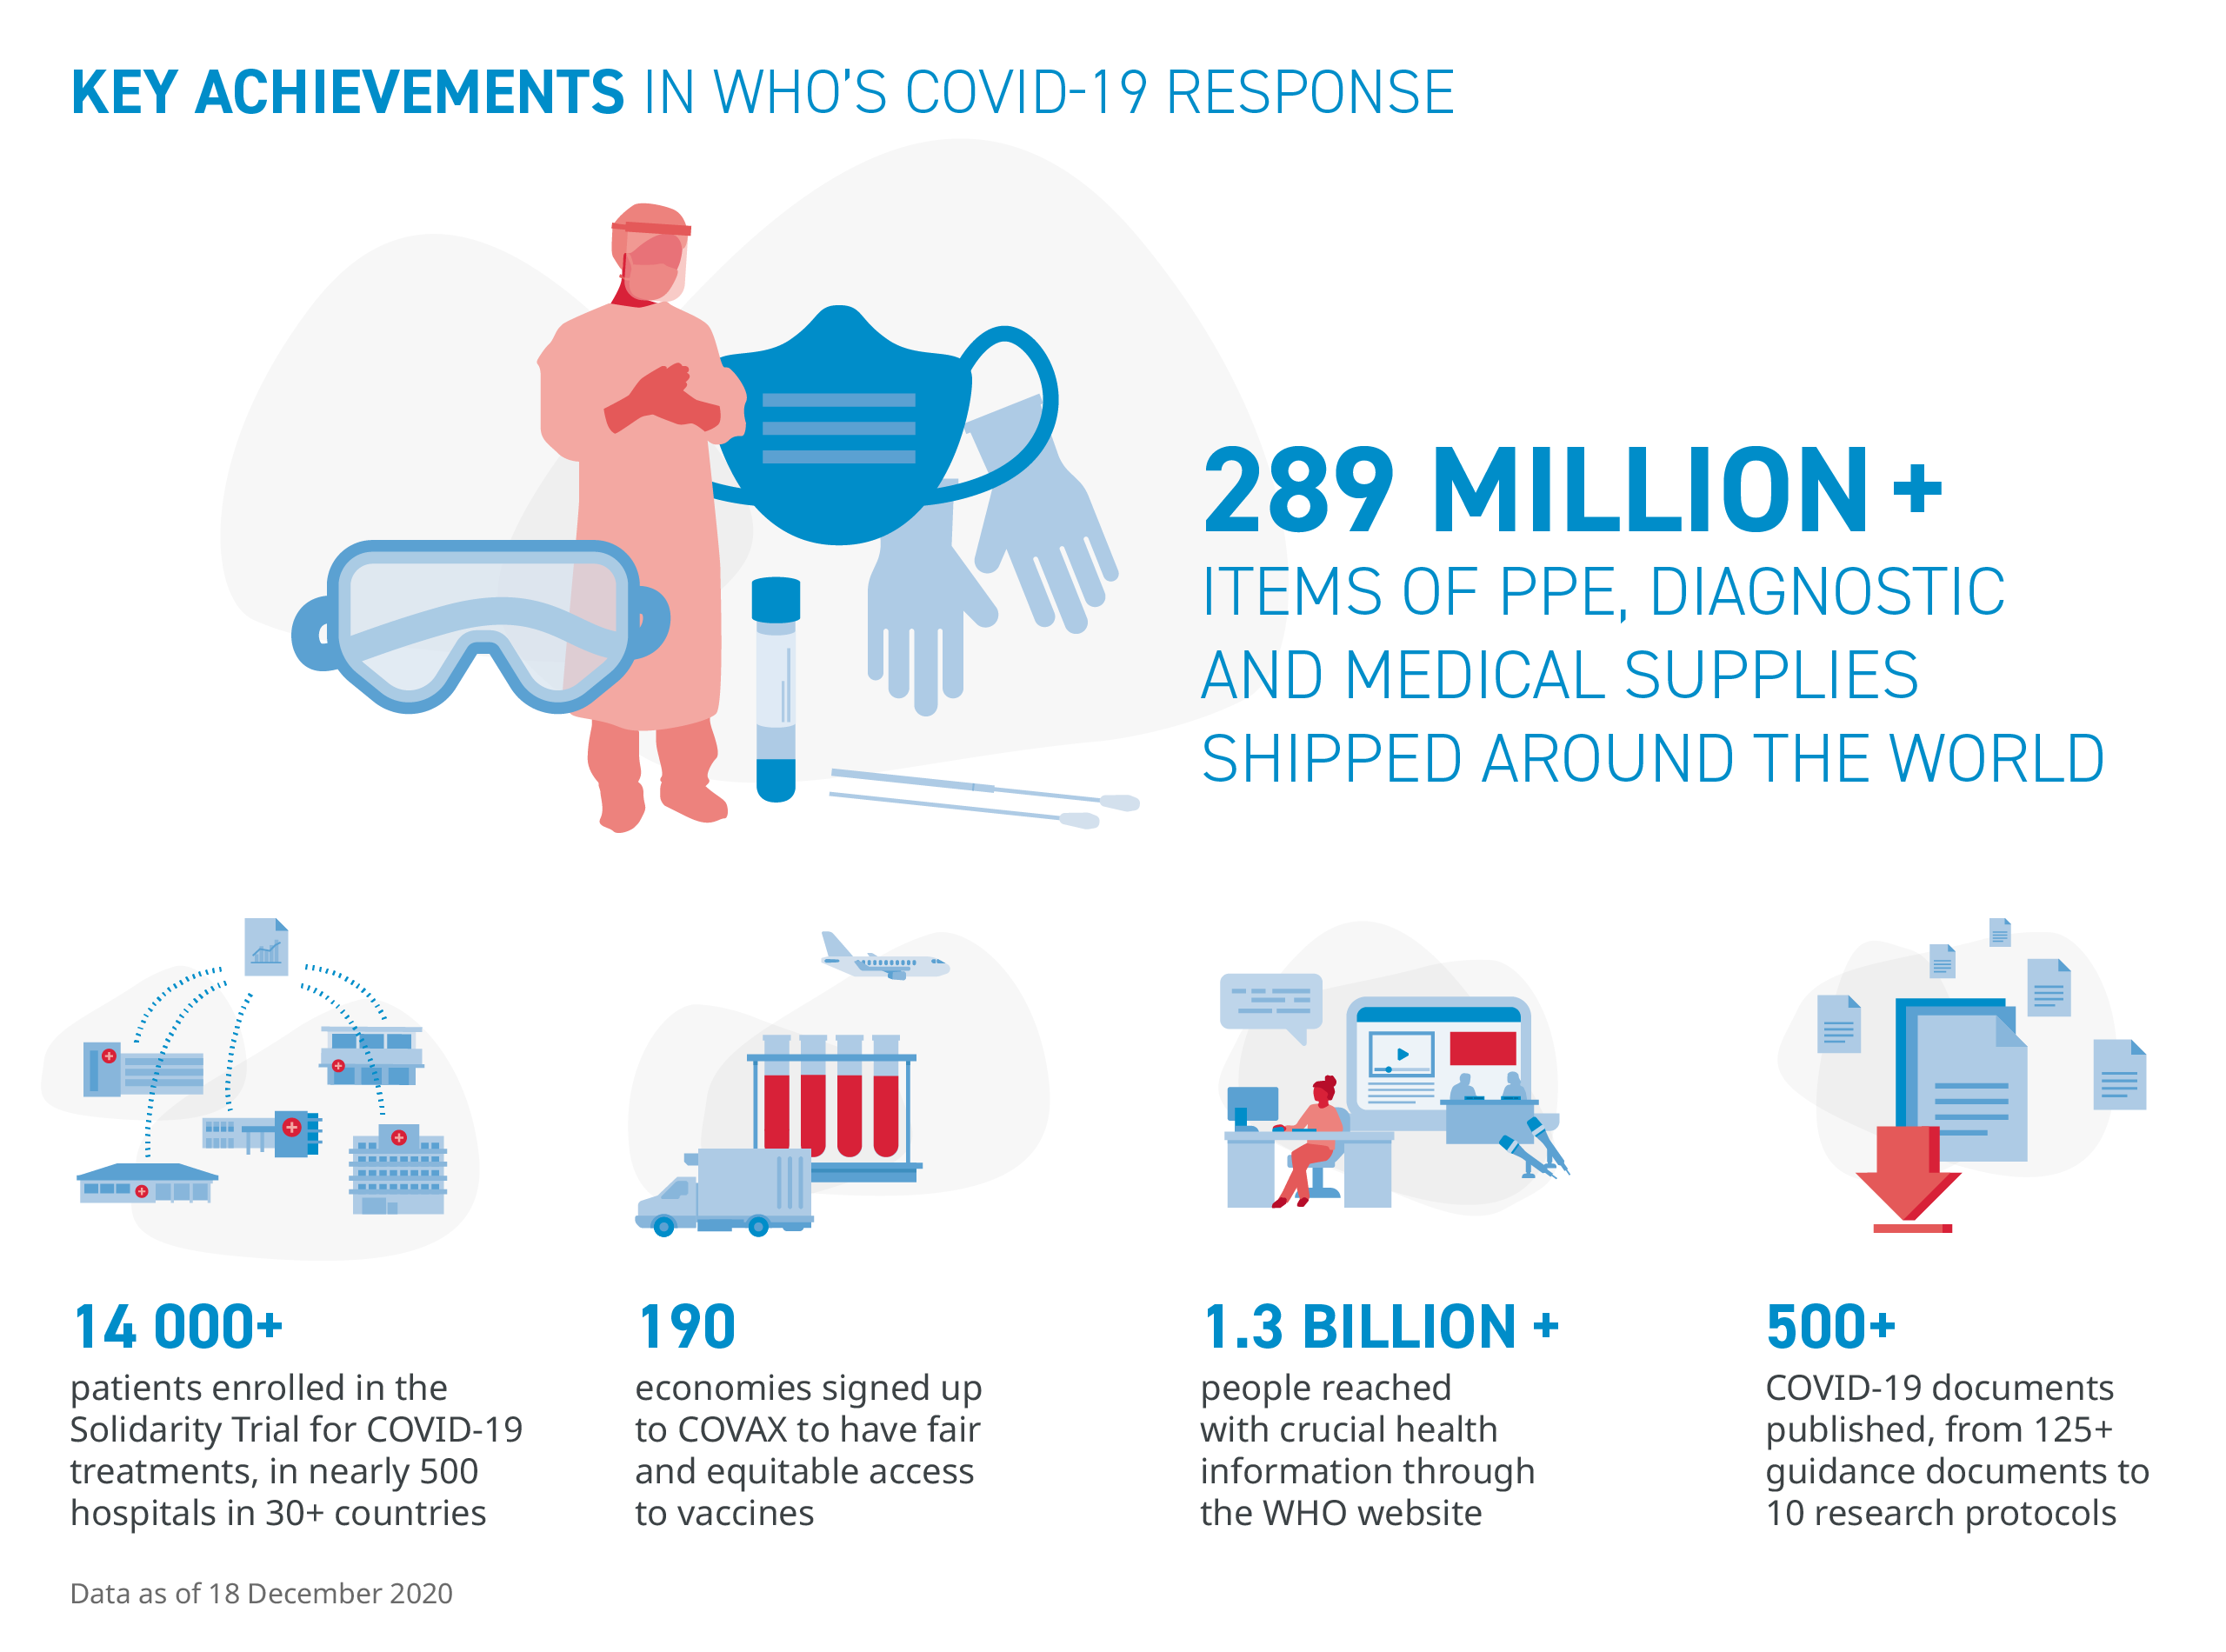 Illustration of key achievements in WHO's COVID-19 response in 2020